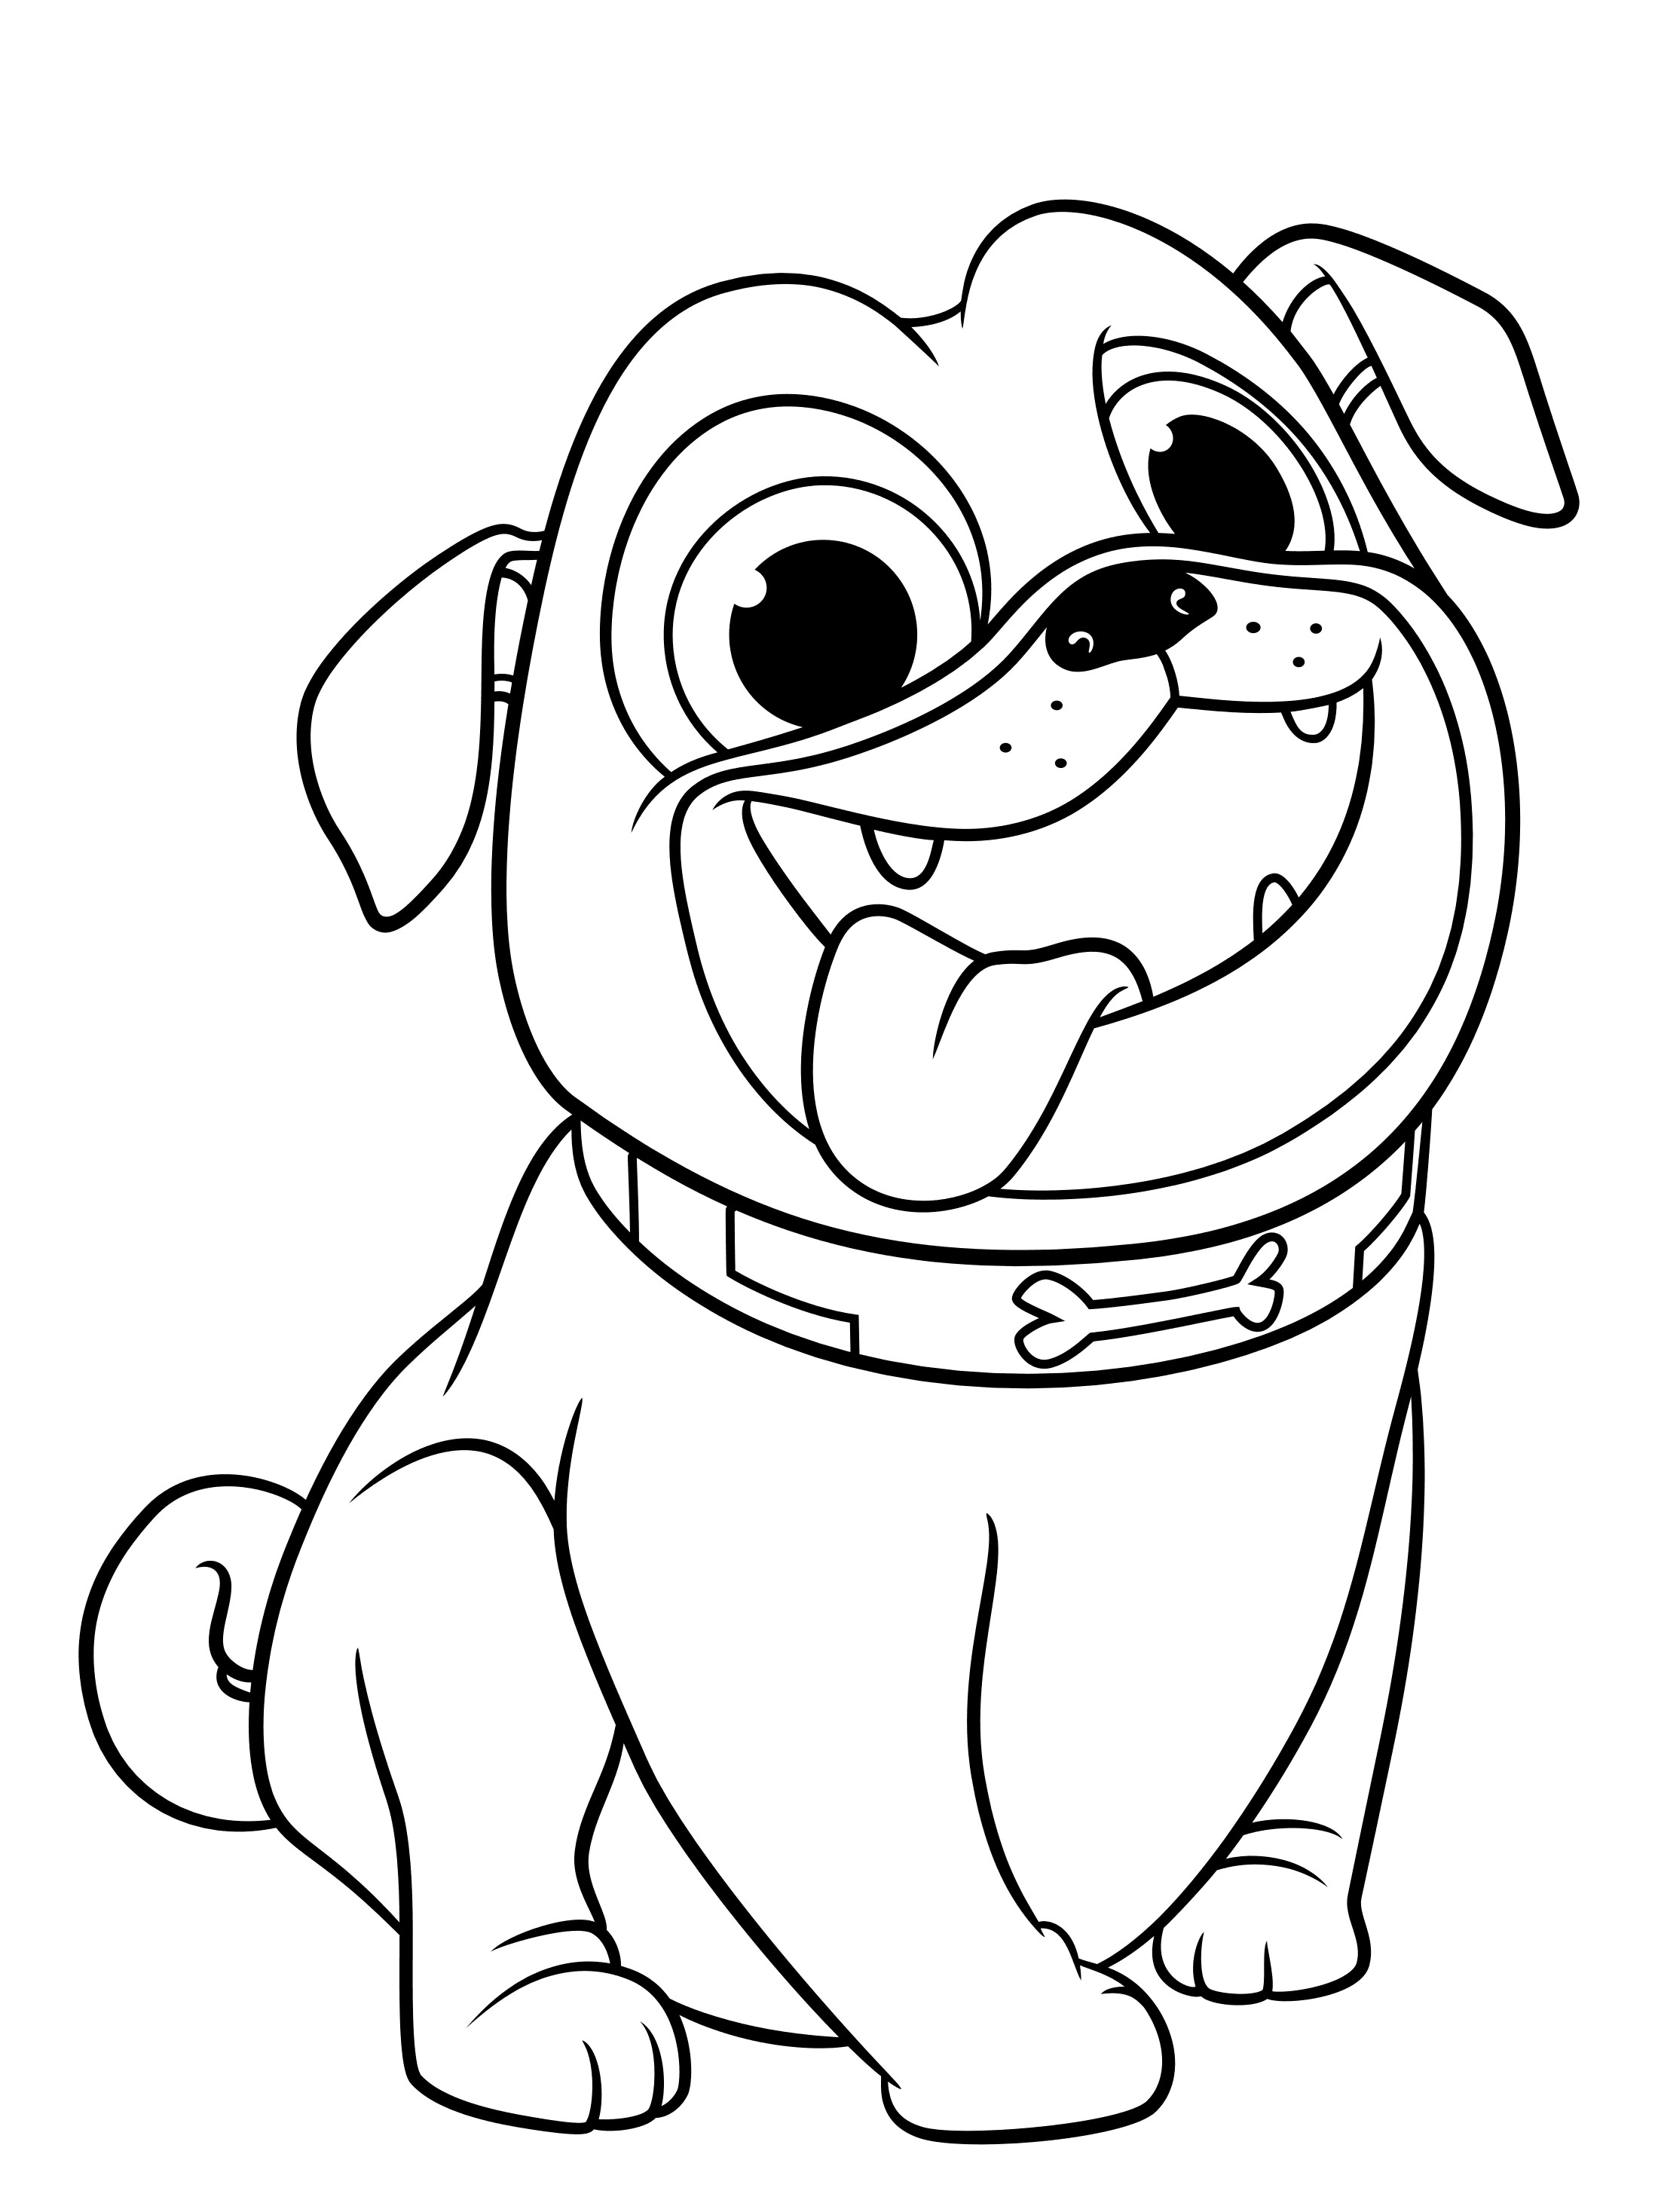 coloring dog for kids pin by happykidsactivity on coloring for kids collection kids coloring for dog